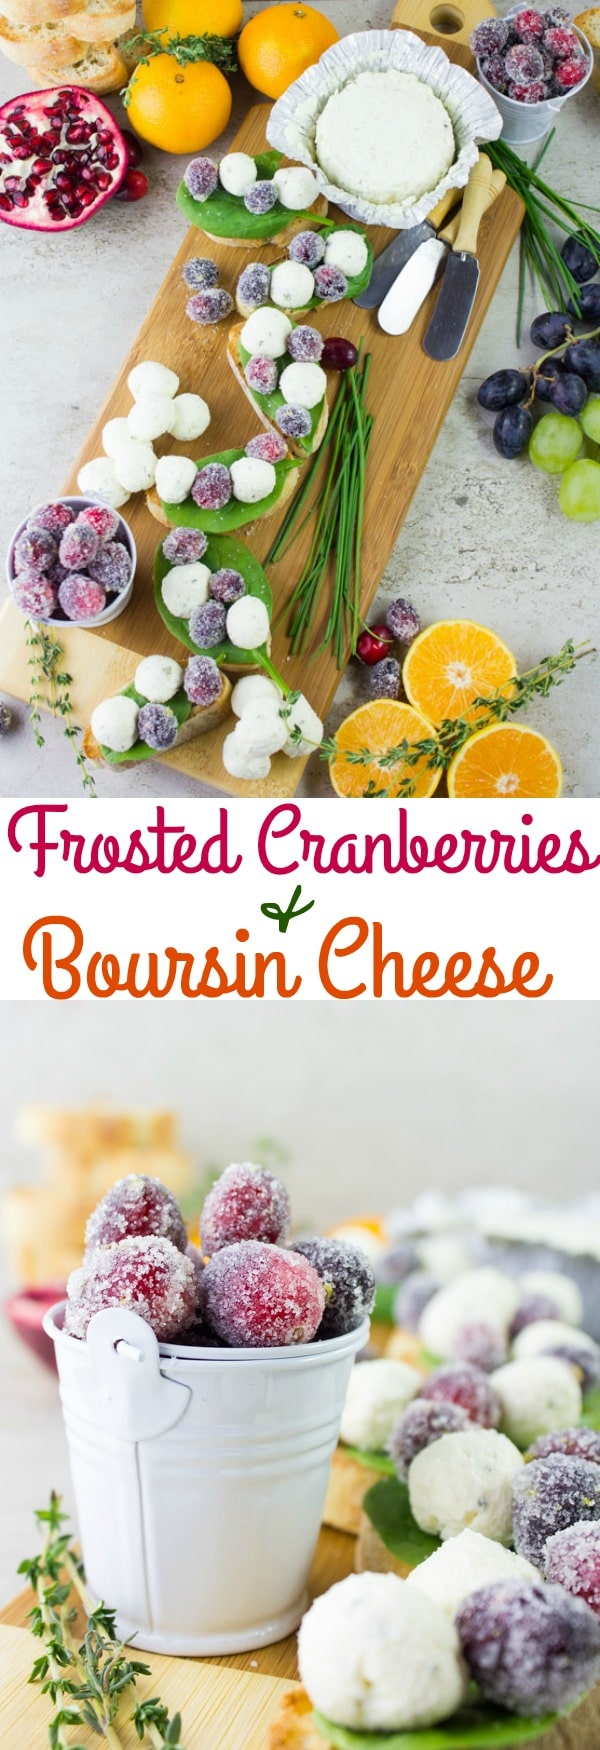 Learn how to make Frosted Cranberries using my step-by-step-guide and pair these fruity gems with little boursin cream cheese balls to make a festive cheese crostini appetizer! #appetizer, #festive, #christmas, #thanksgiving, #easy, #diy